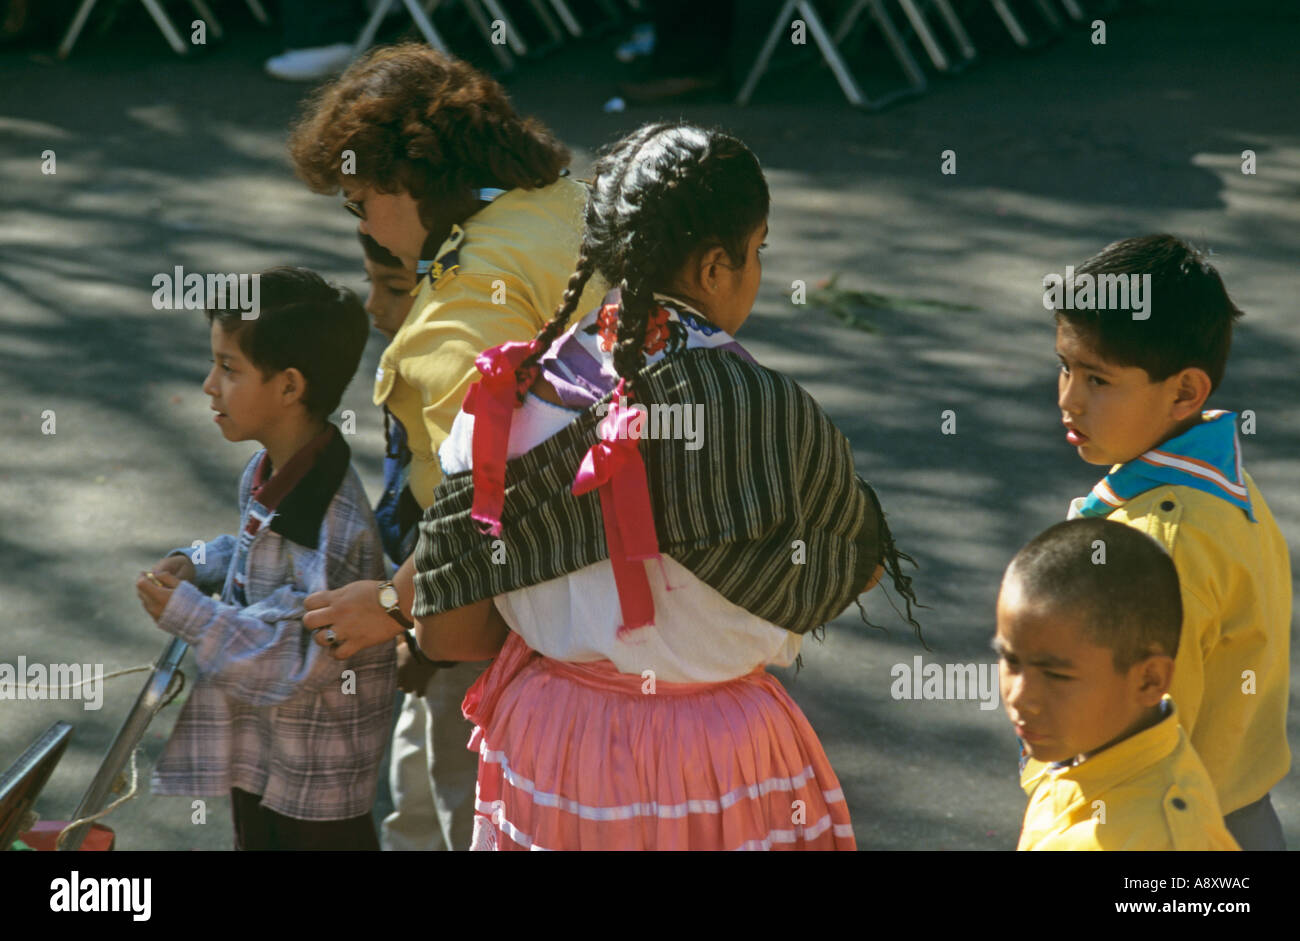 A blend of cultures and styles in Oaxaca Mexico - Stock Image